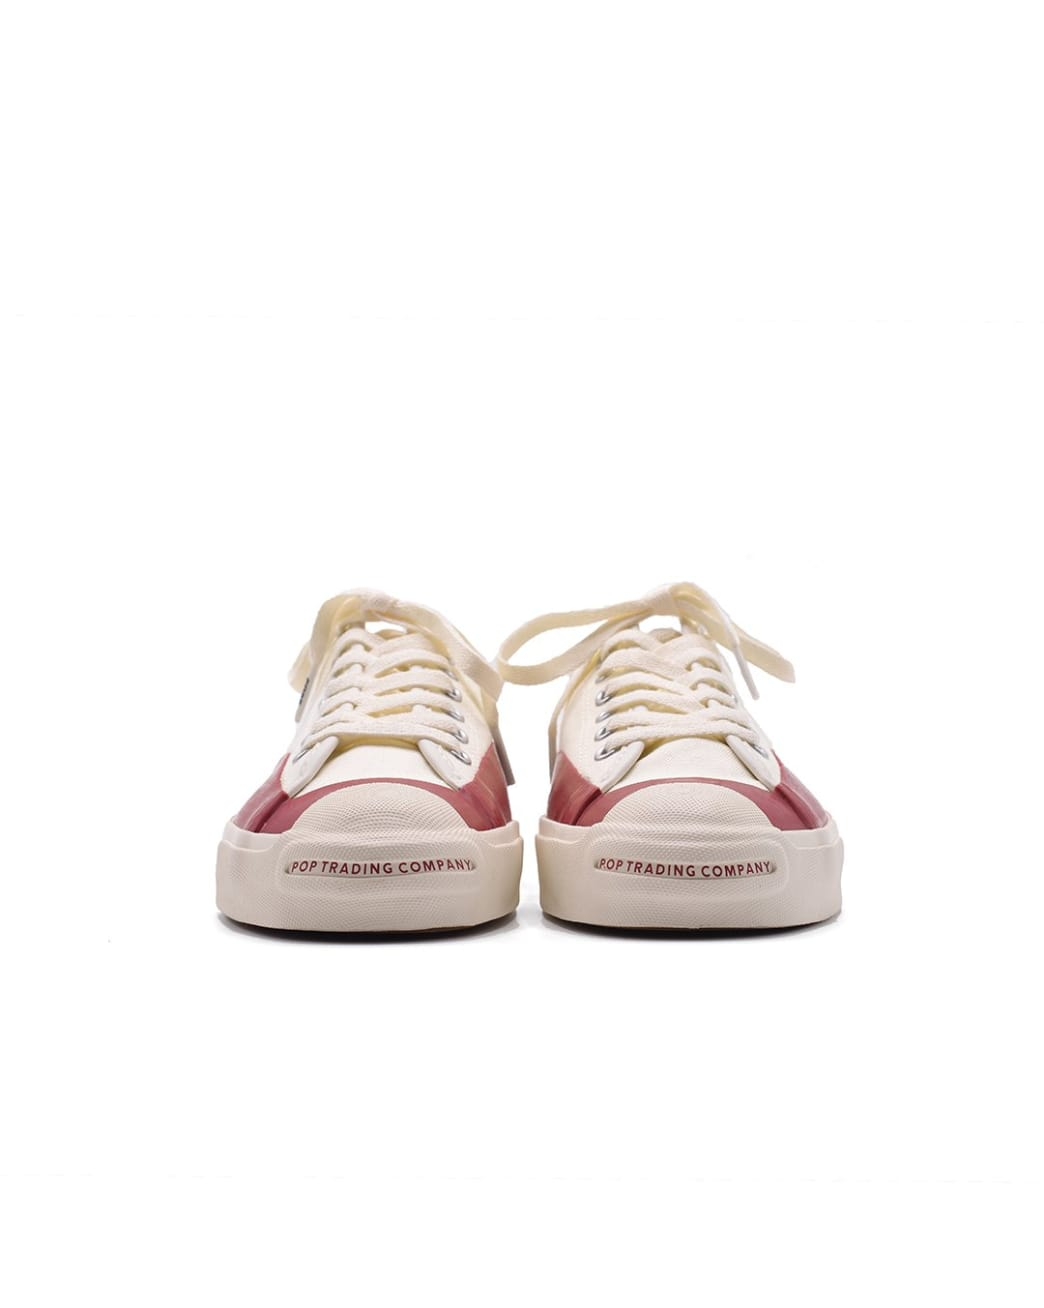 Converse Pop Trading Jack Purcell Pro Ox - Egret / Red Dahlia | Shoes by Converse Cons 4